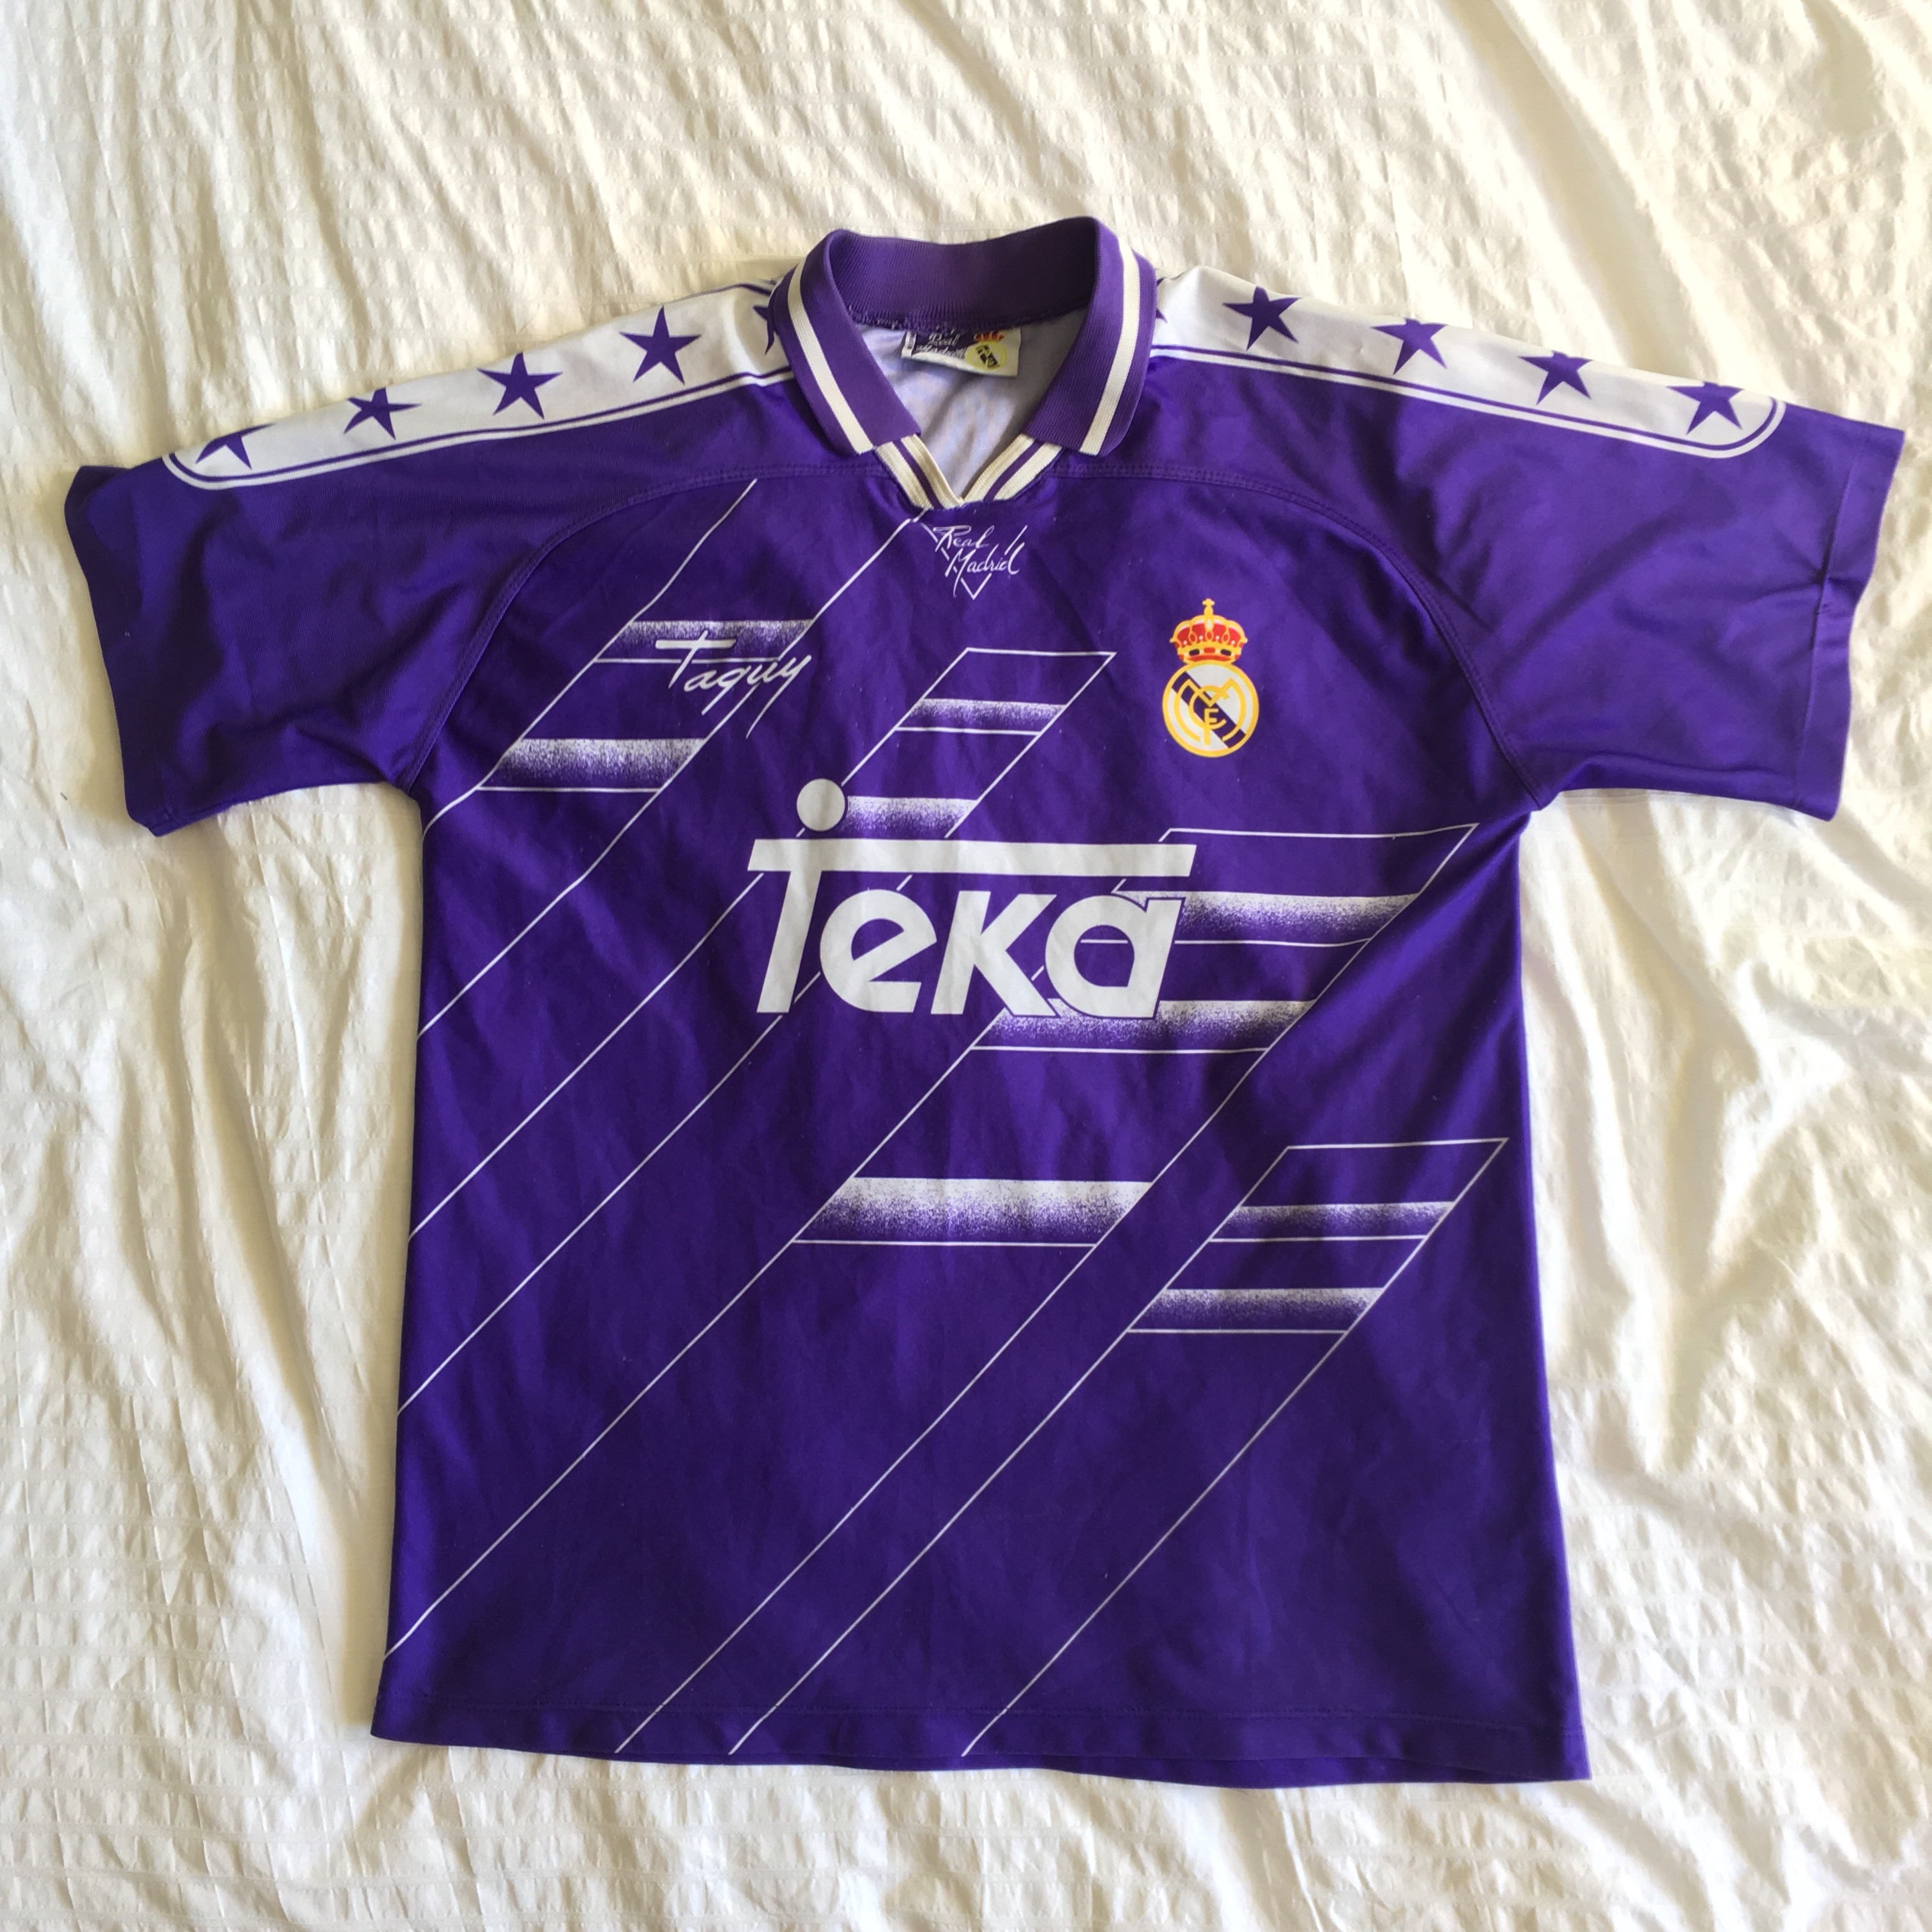 online store d2480 09c7f Official replica of 90's Real Madrid purple away... - Depop